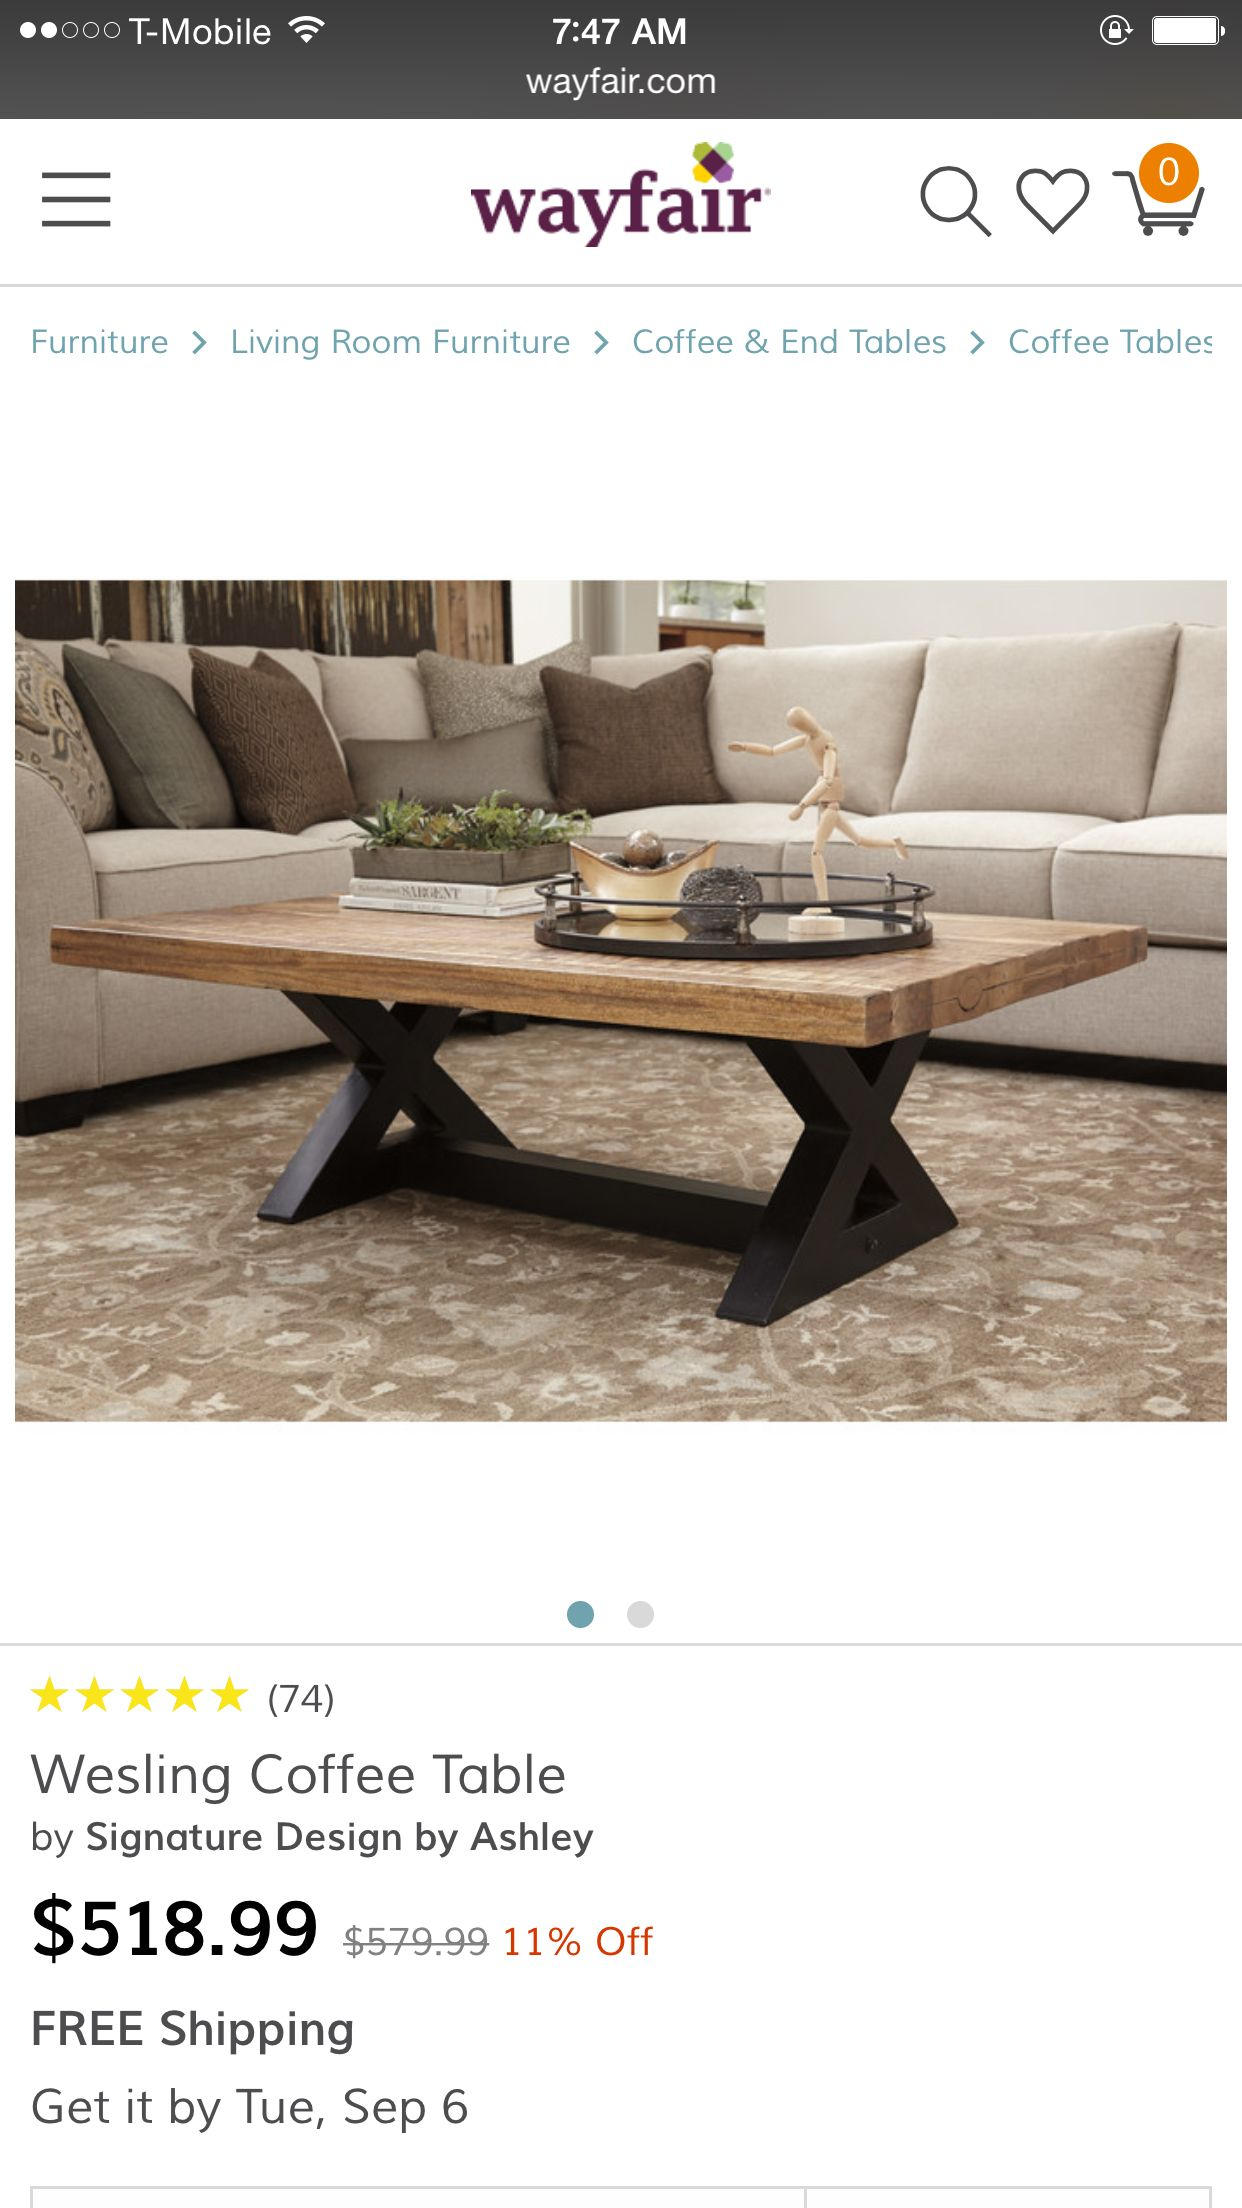 Pin By Laurie Subers On Chris Seidel Coffee Table Coffee Table Wood Cool Coffee Tables [ 2208 x 1242 Pixel ]